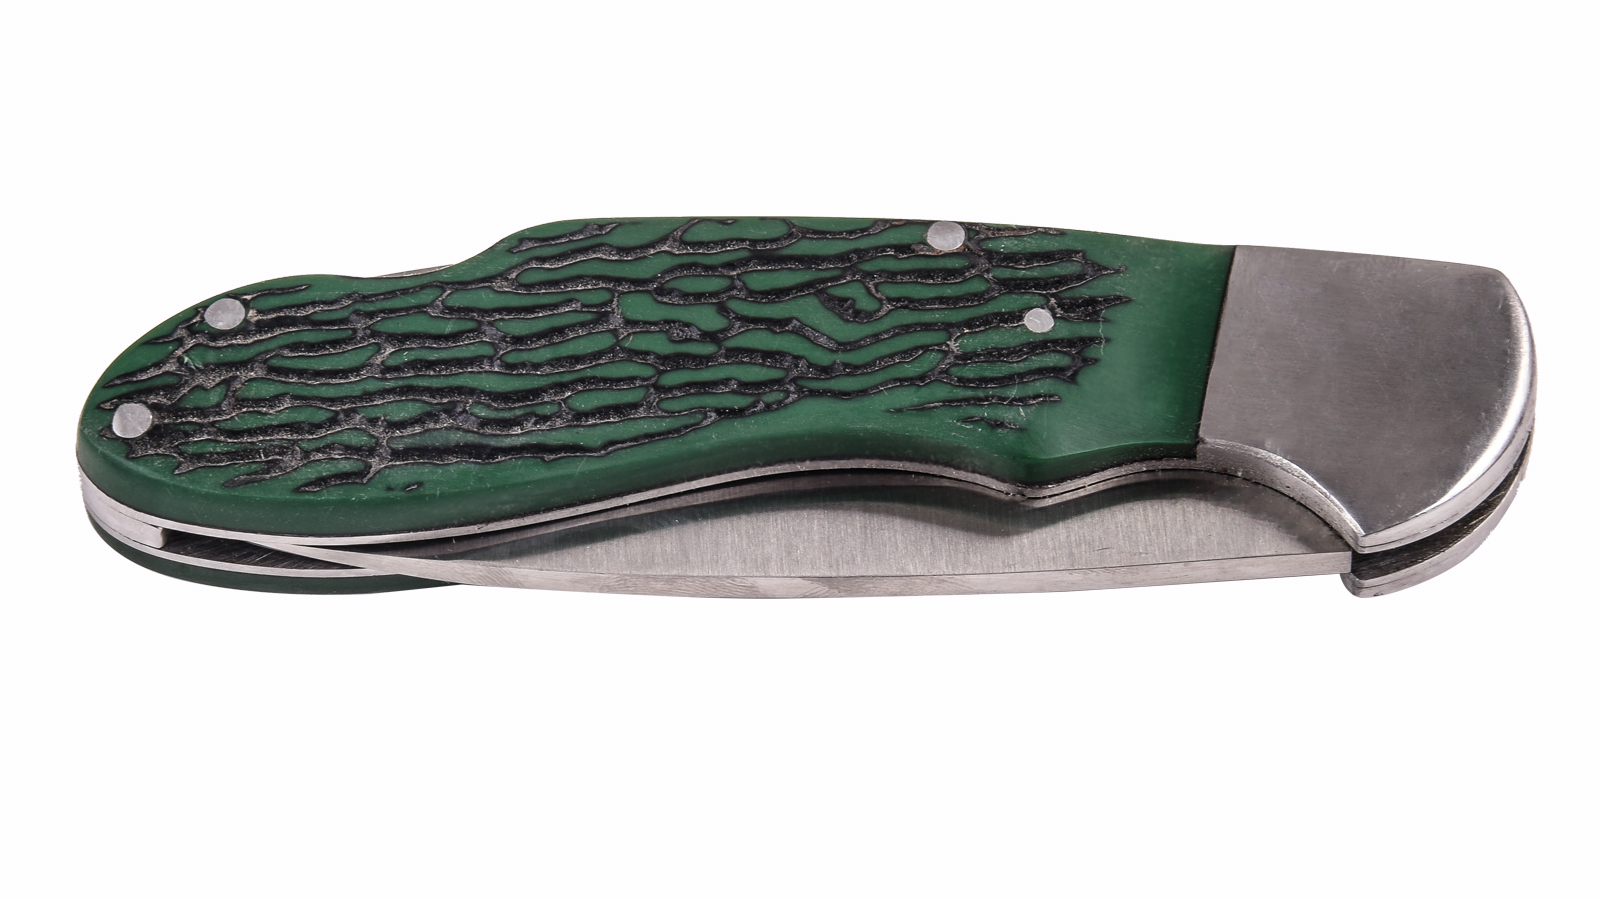 Коллекционный нож Remington Limited Edition 200 Years Sportsman Series